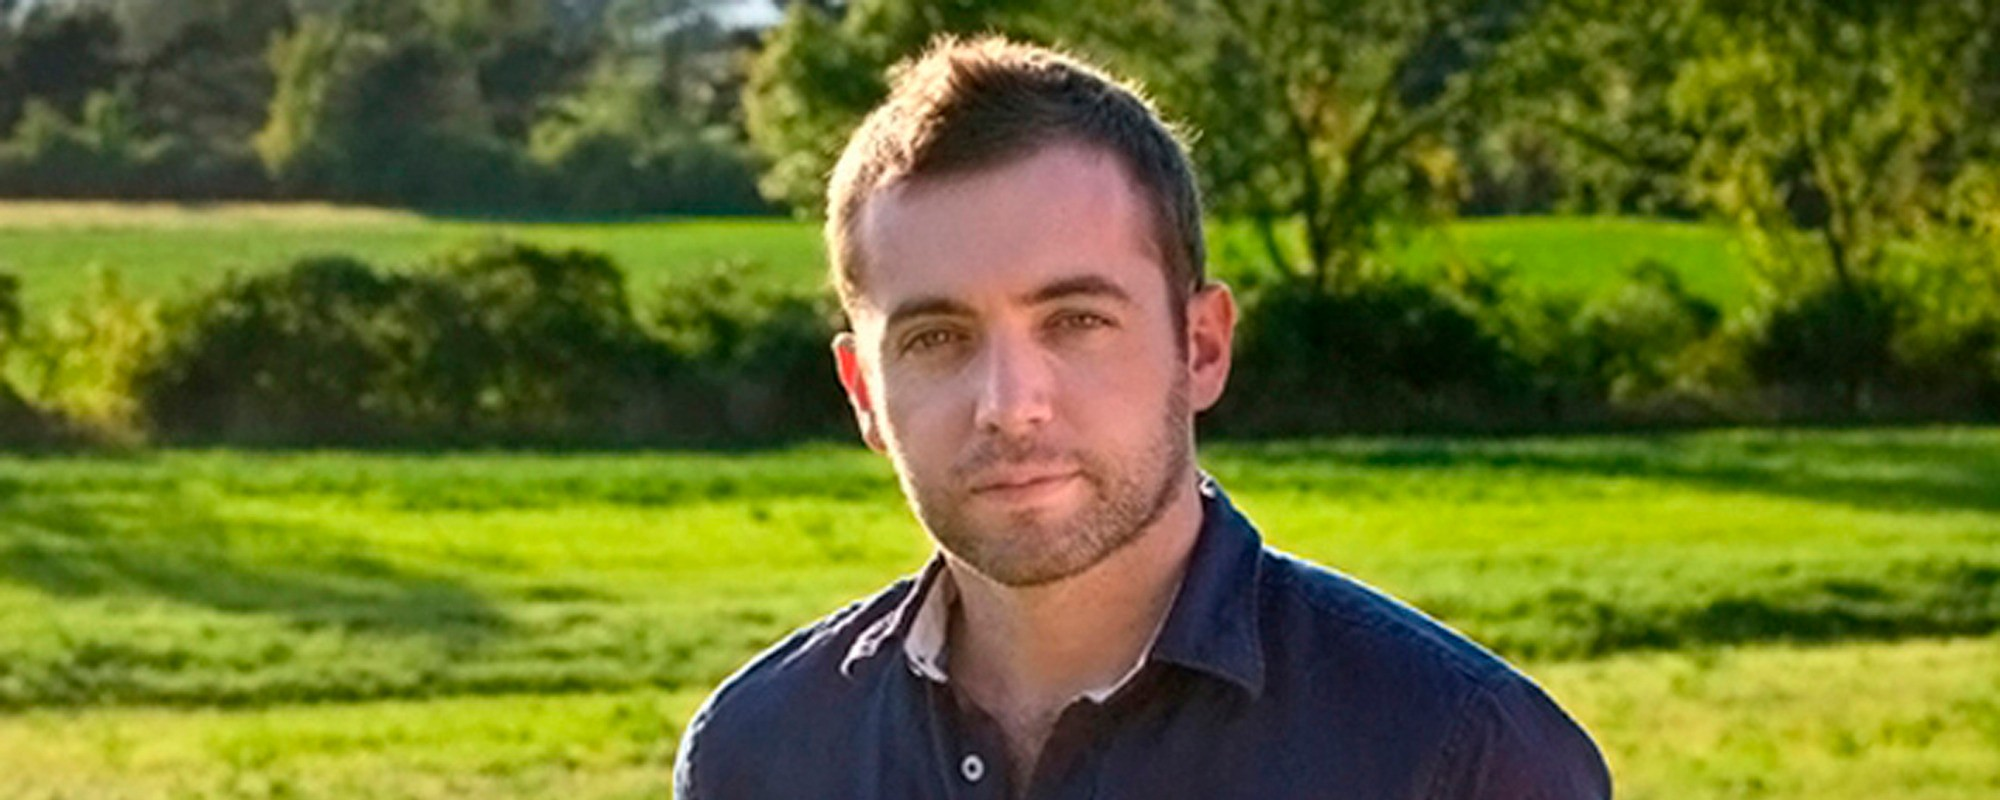 Why Was the FBI Investigating Michael Hastings' Reporting on Bowe Bergdahl?